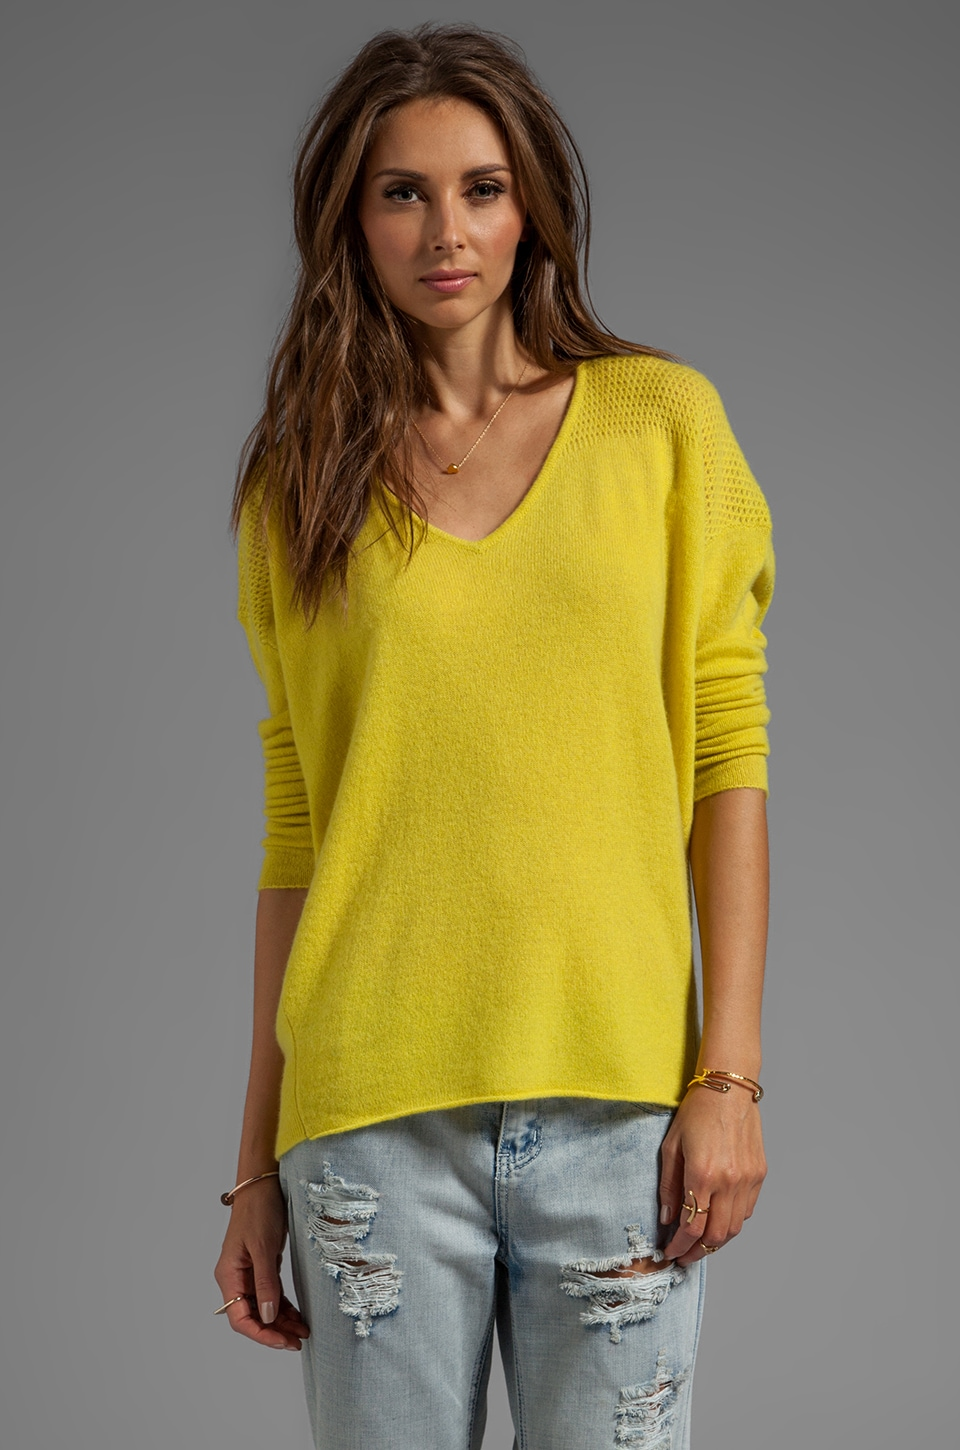 Velvet by Graham & Spencer Clare Cashmere Classic Long Sleeve V-Neck in Canary